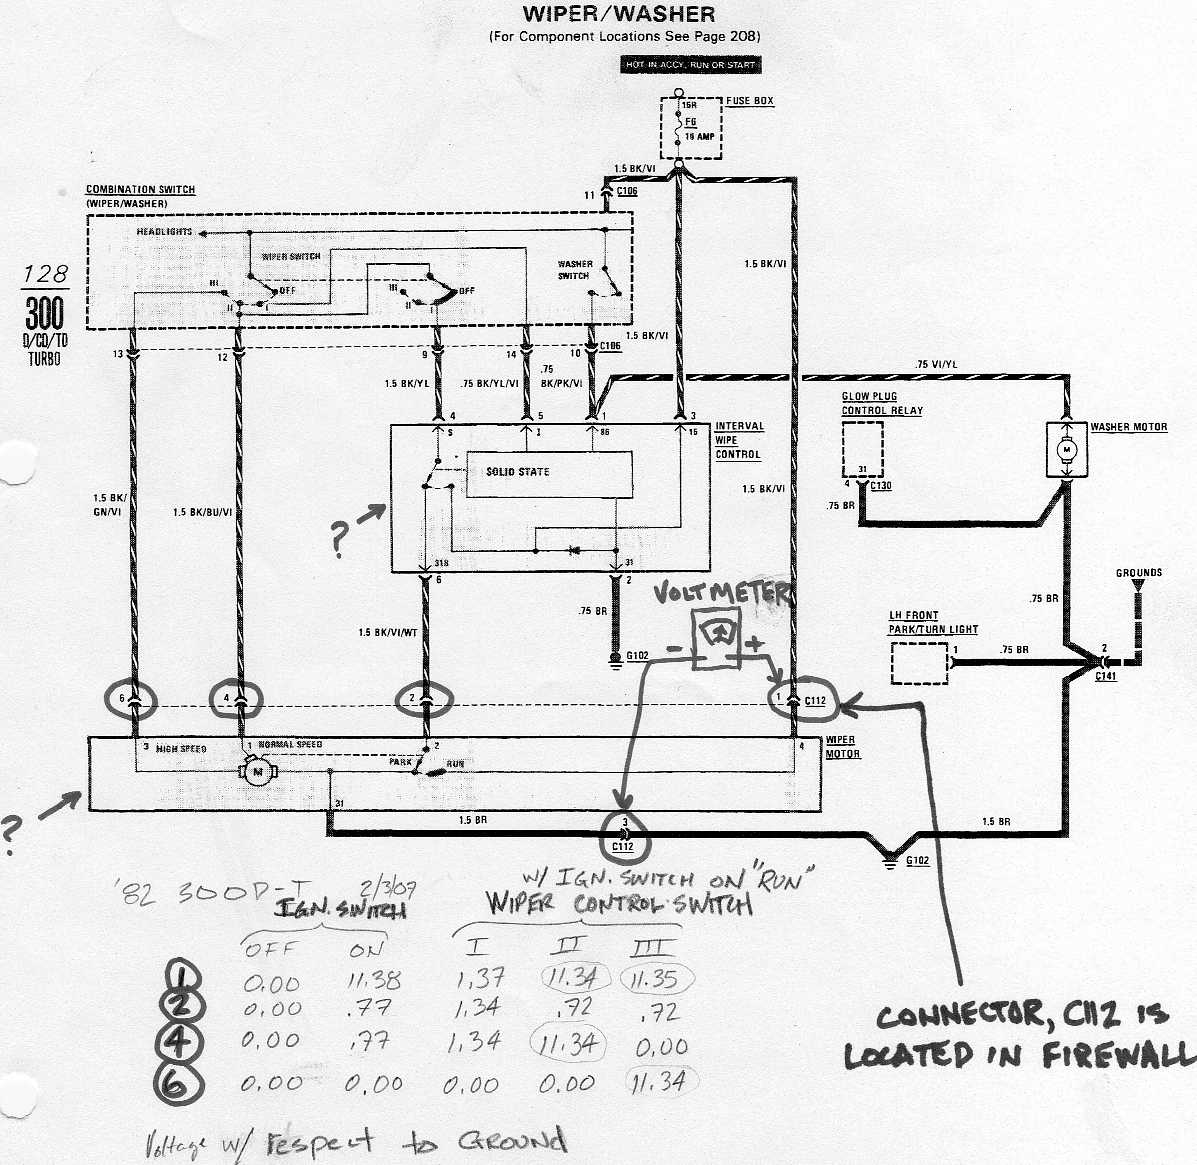 Troubleshooting Windshield Wiper Motor Wiring Diagram Chevy Mercedes Benz Forum 1968 Camaro